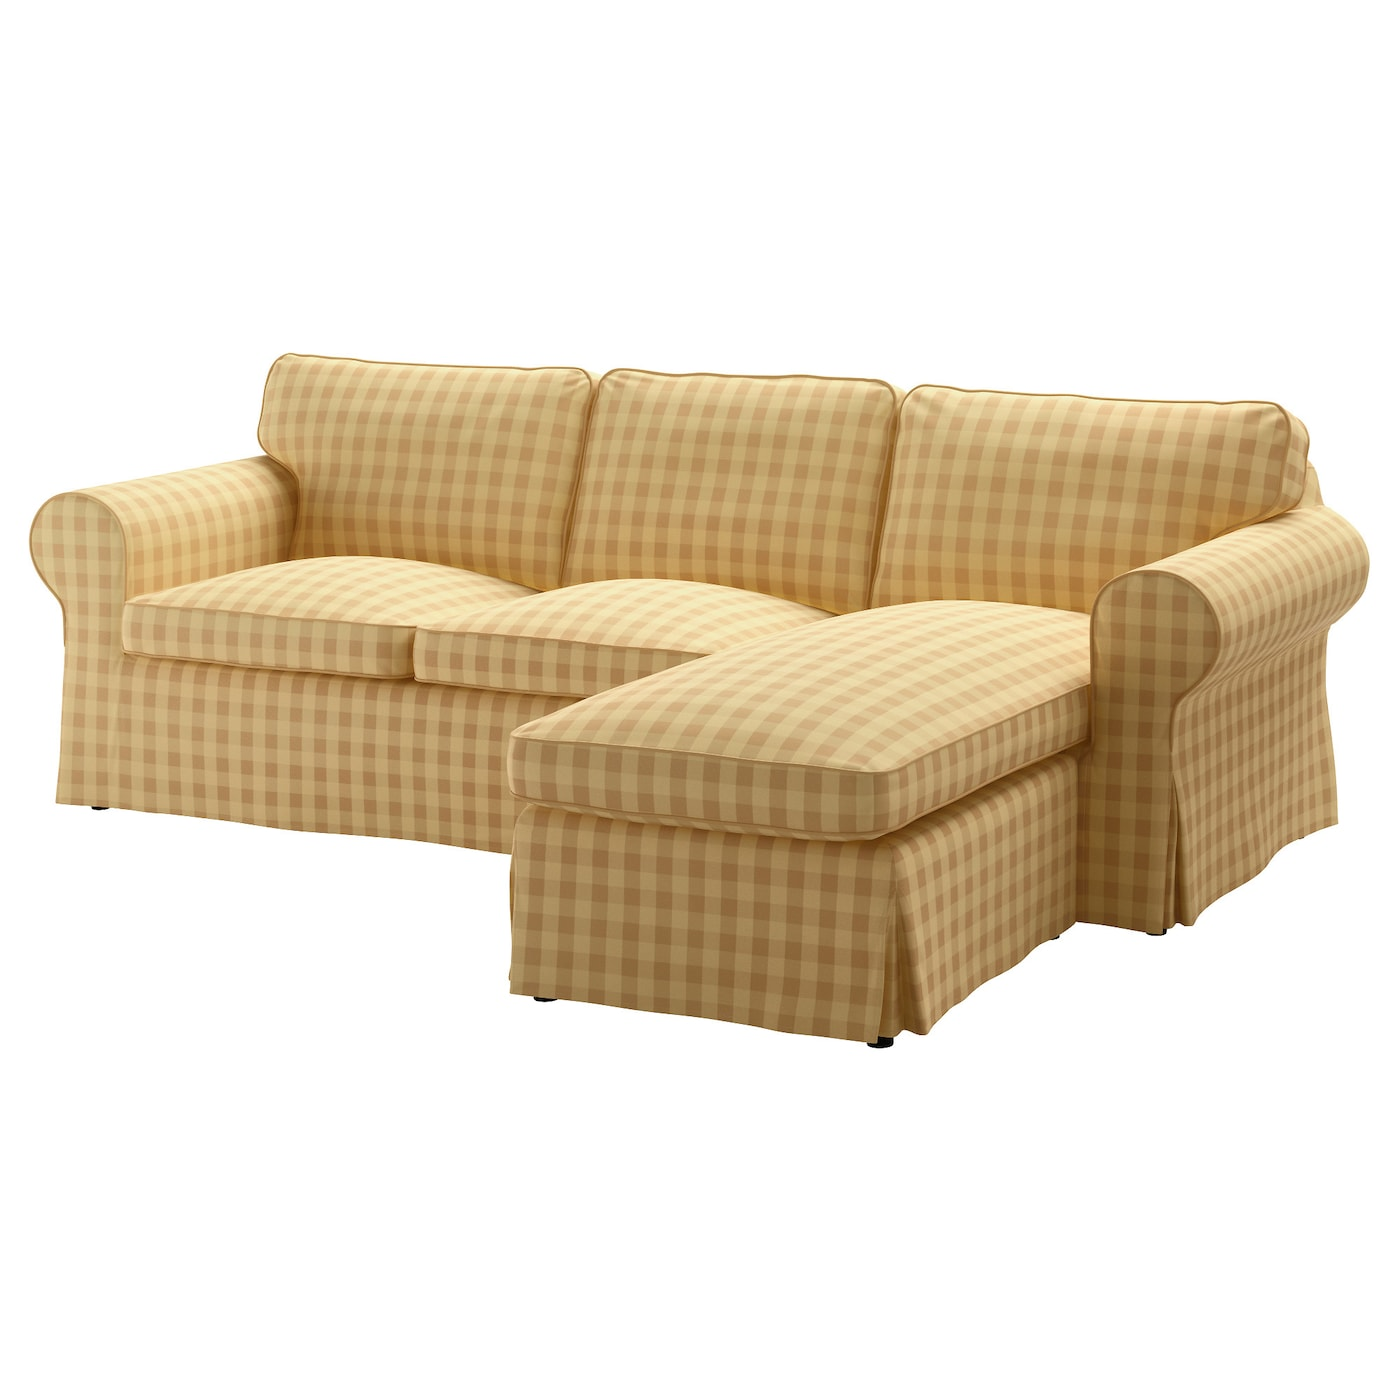 Ektorp cover two seat sofa w chaise longue skaftarp yellow ikea - Chaise longue jardin ikea ...